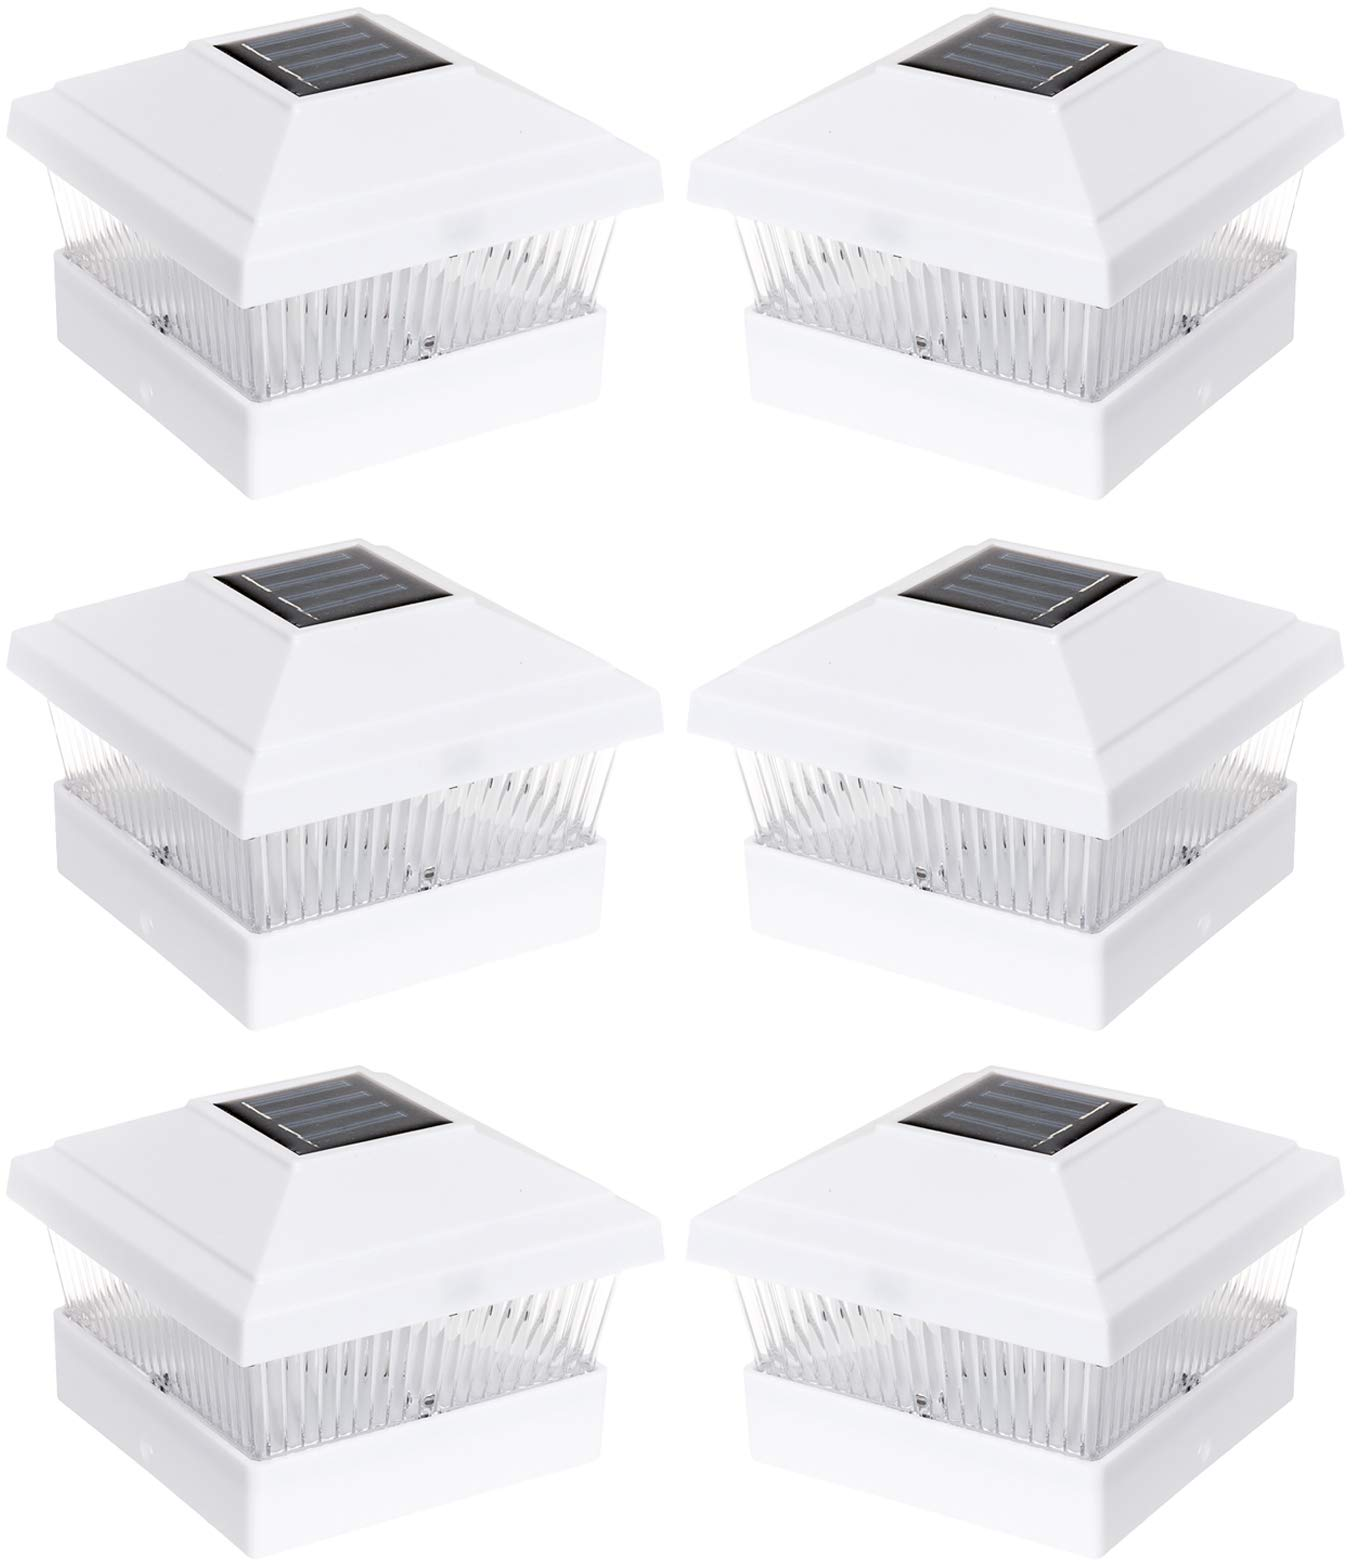 Solar Outdoor Fence Post Cap LED Light for 5 x 5 PVC Posts, White, 6 Pack